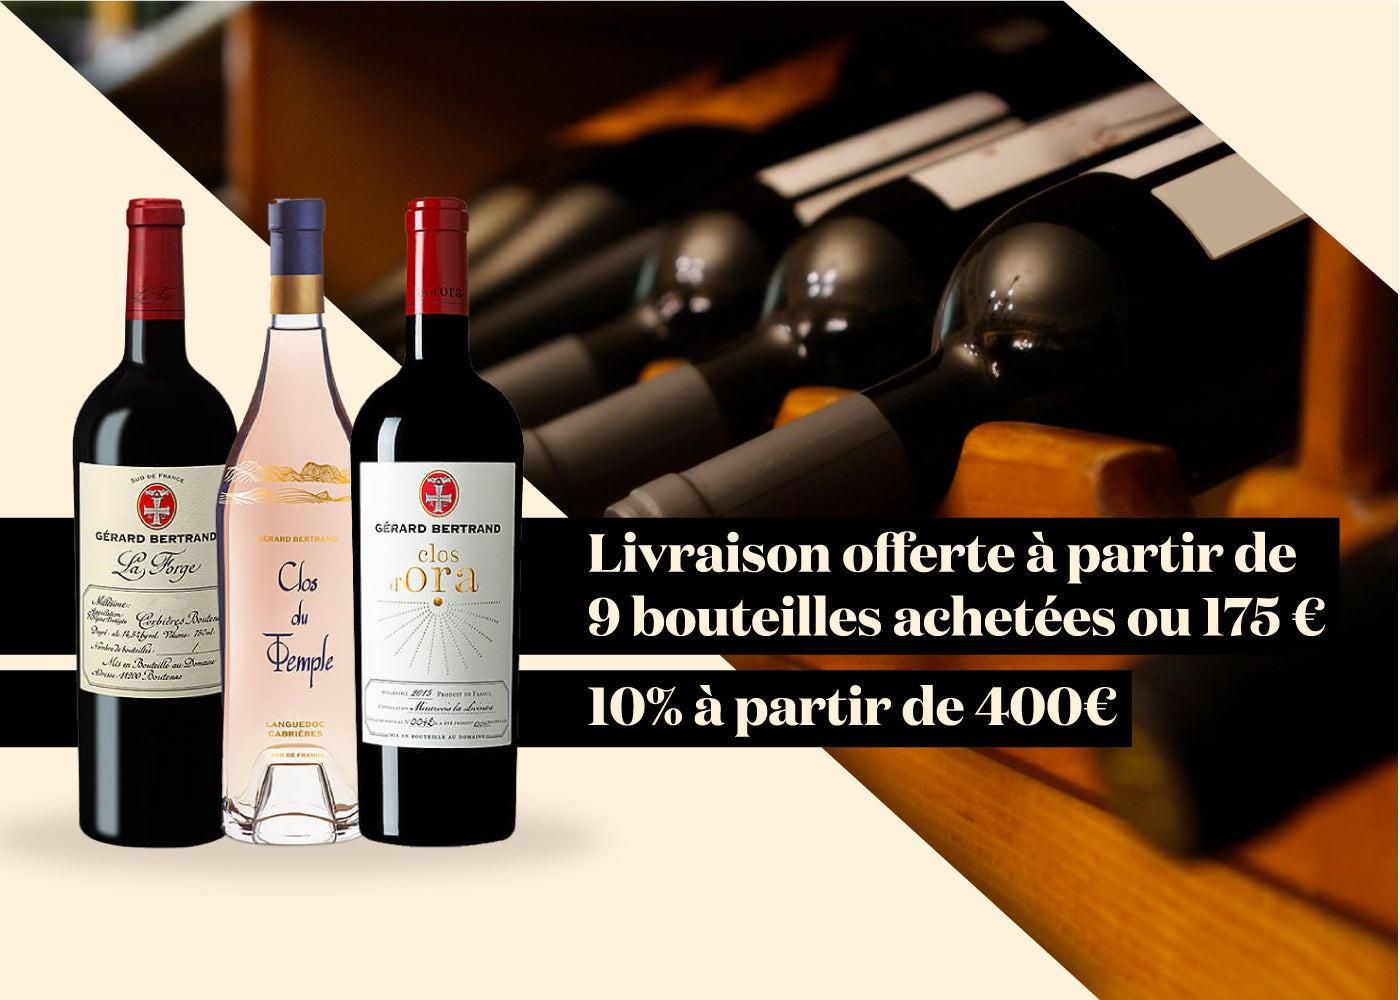 gérard bertrand 2020 wine fair